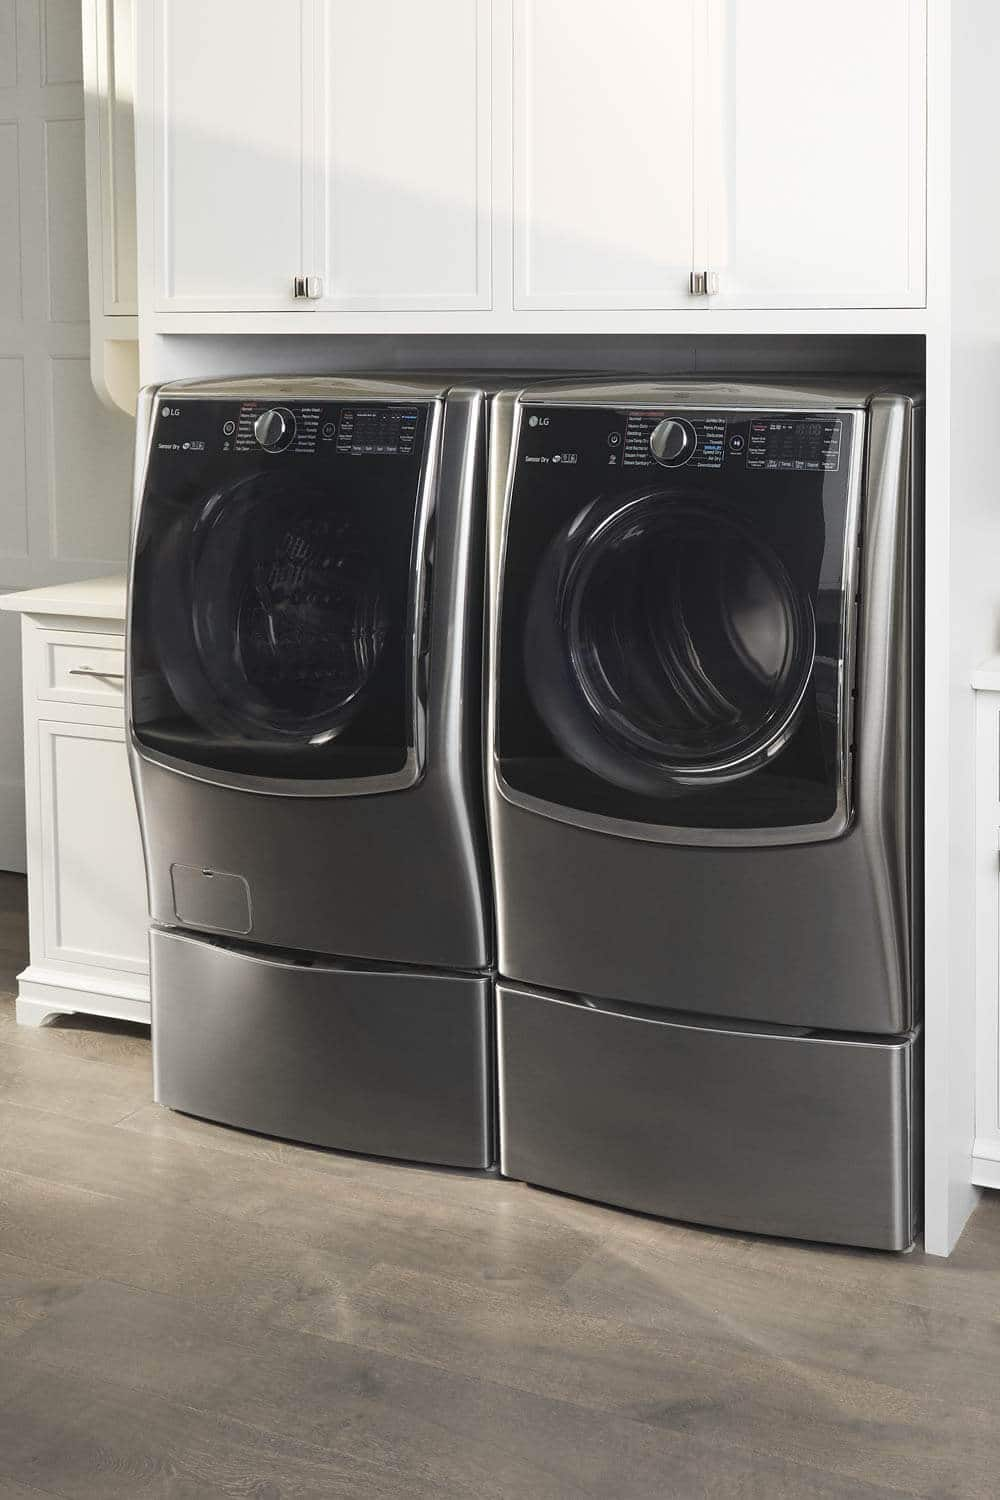 picture of a washer and dryer